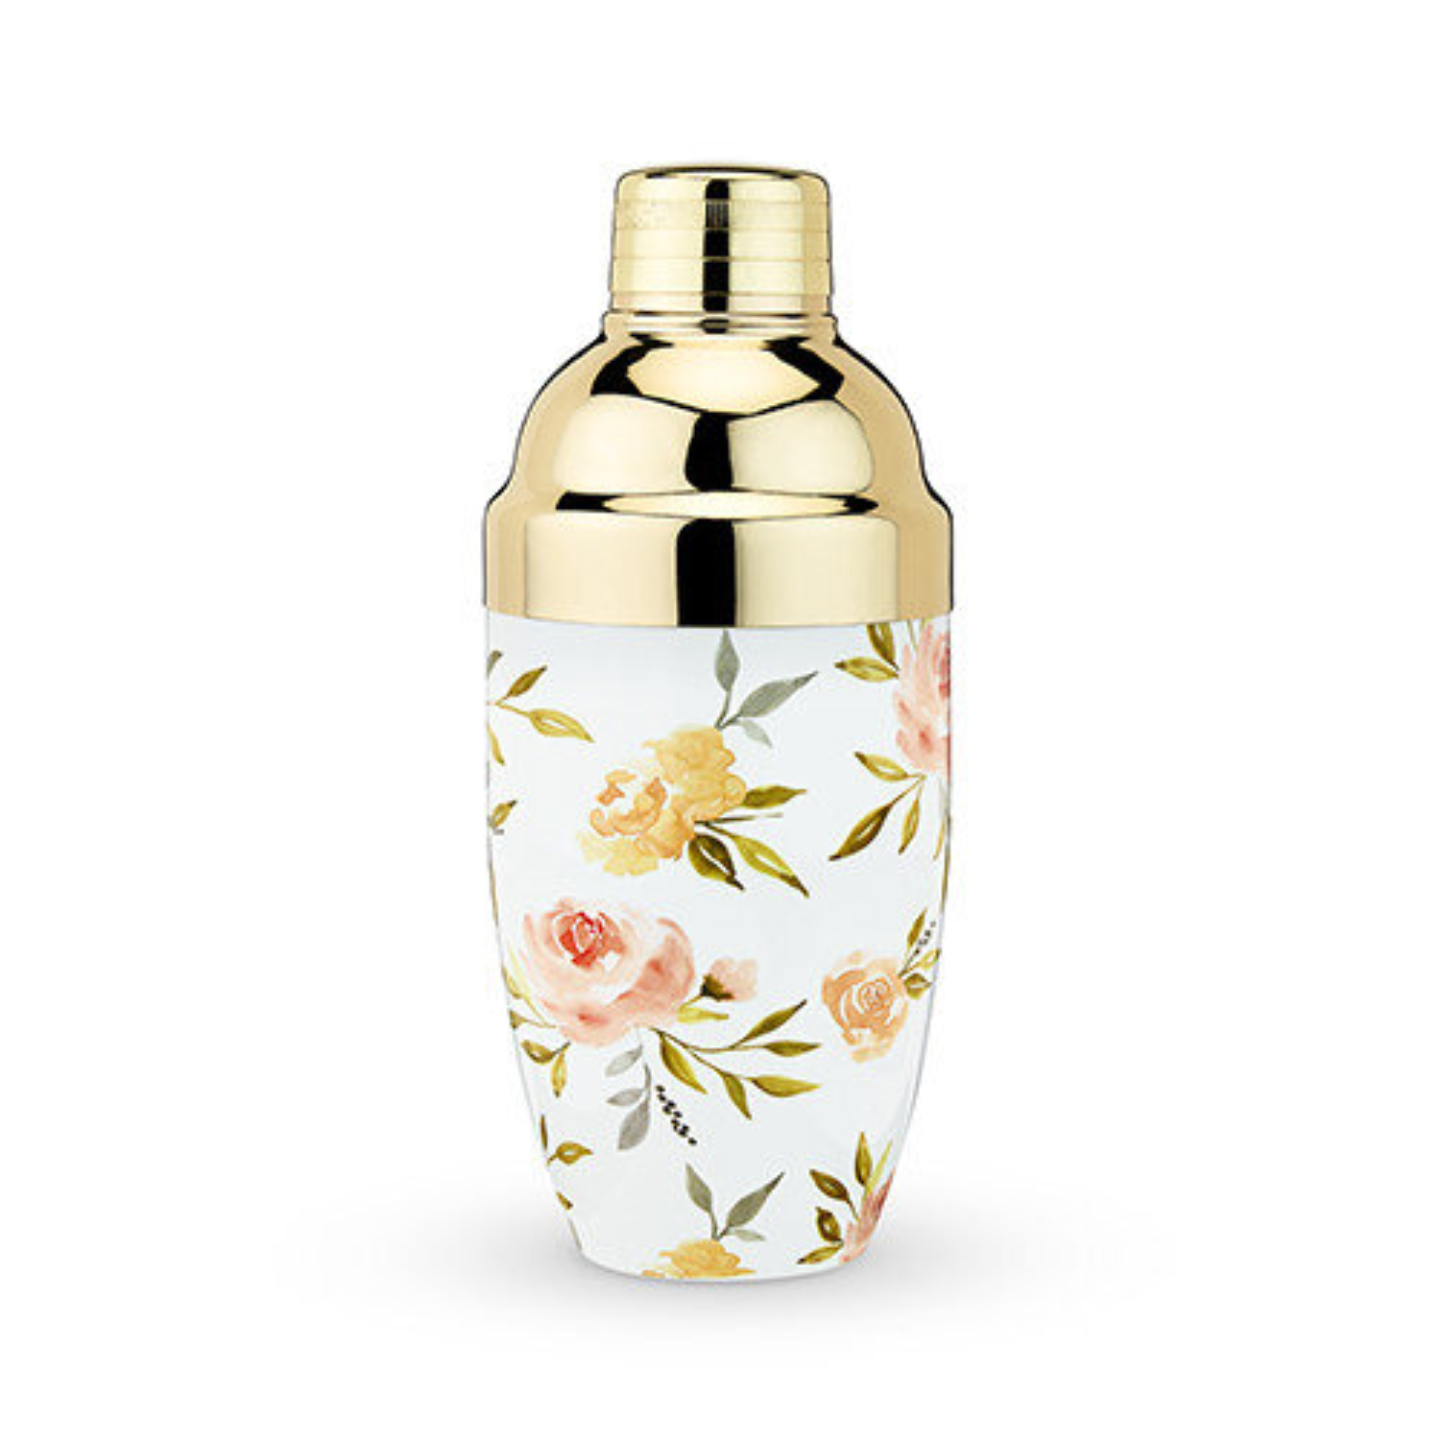 A gold cocktail shaker with watercolour floral prints on its body.